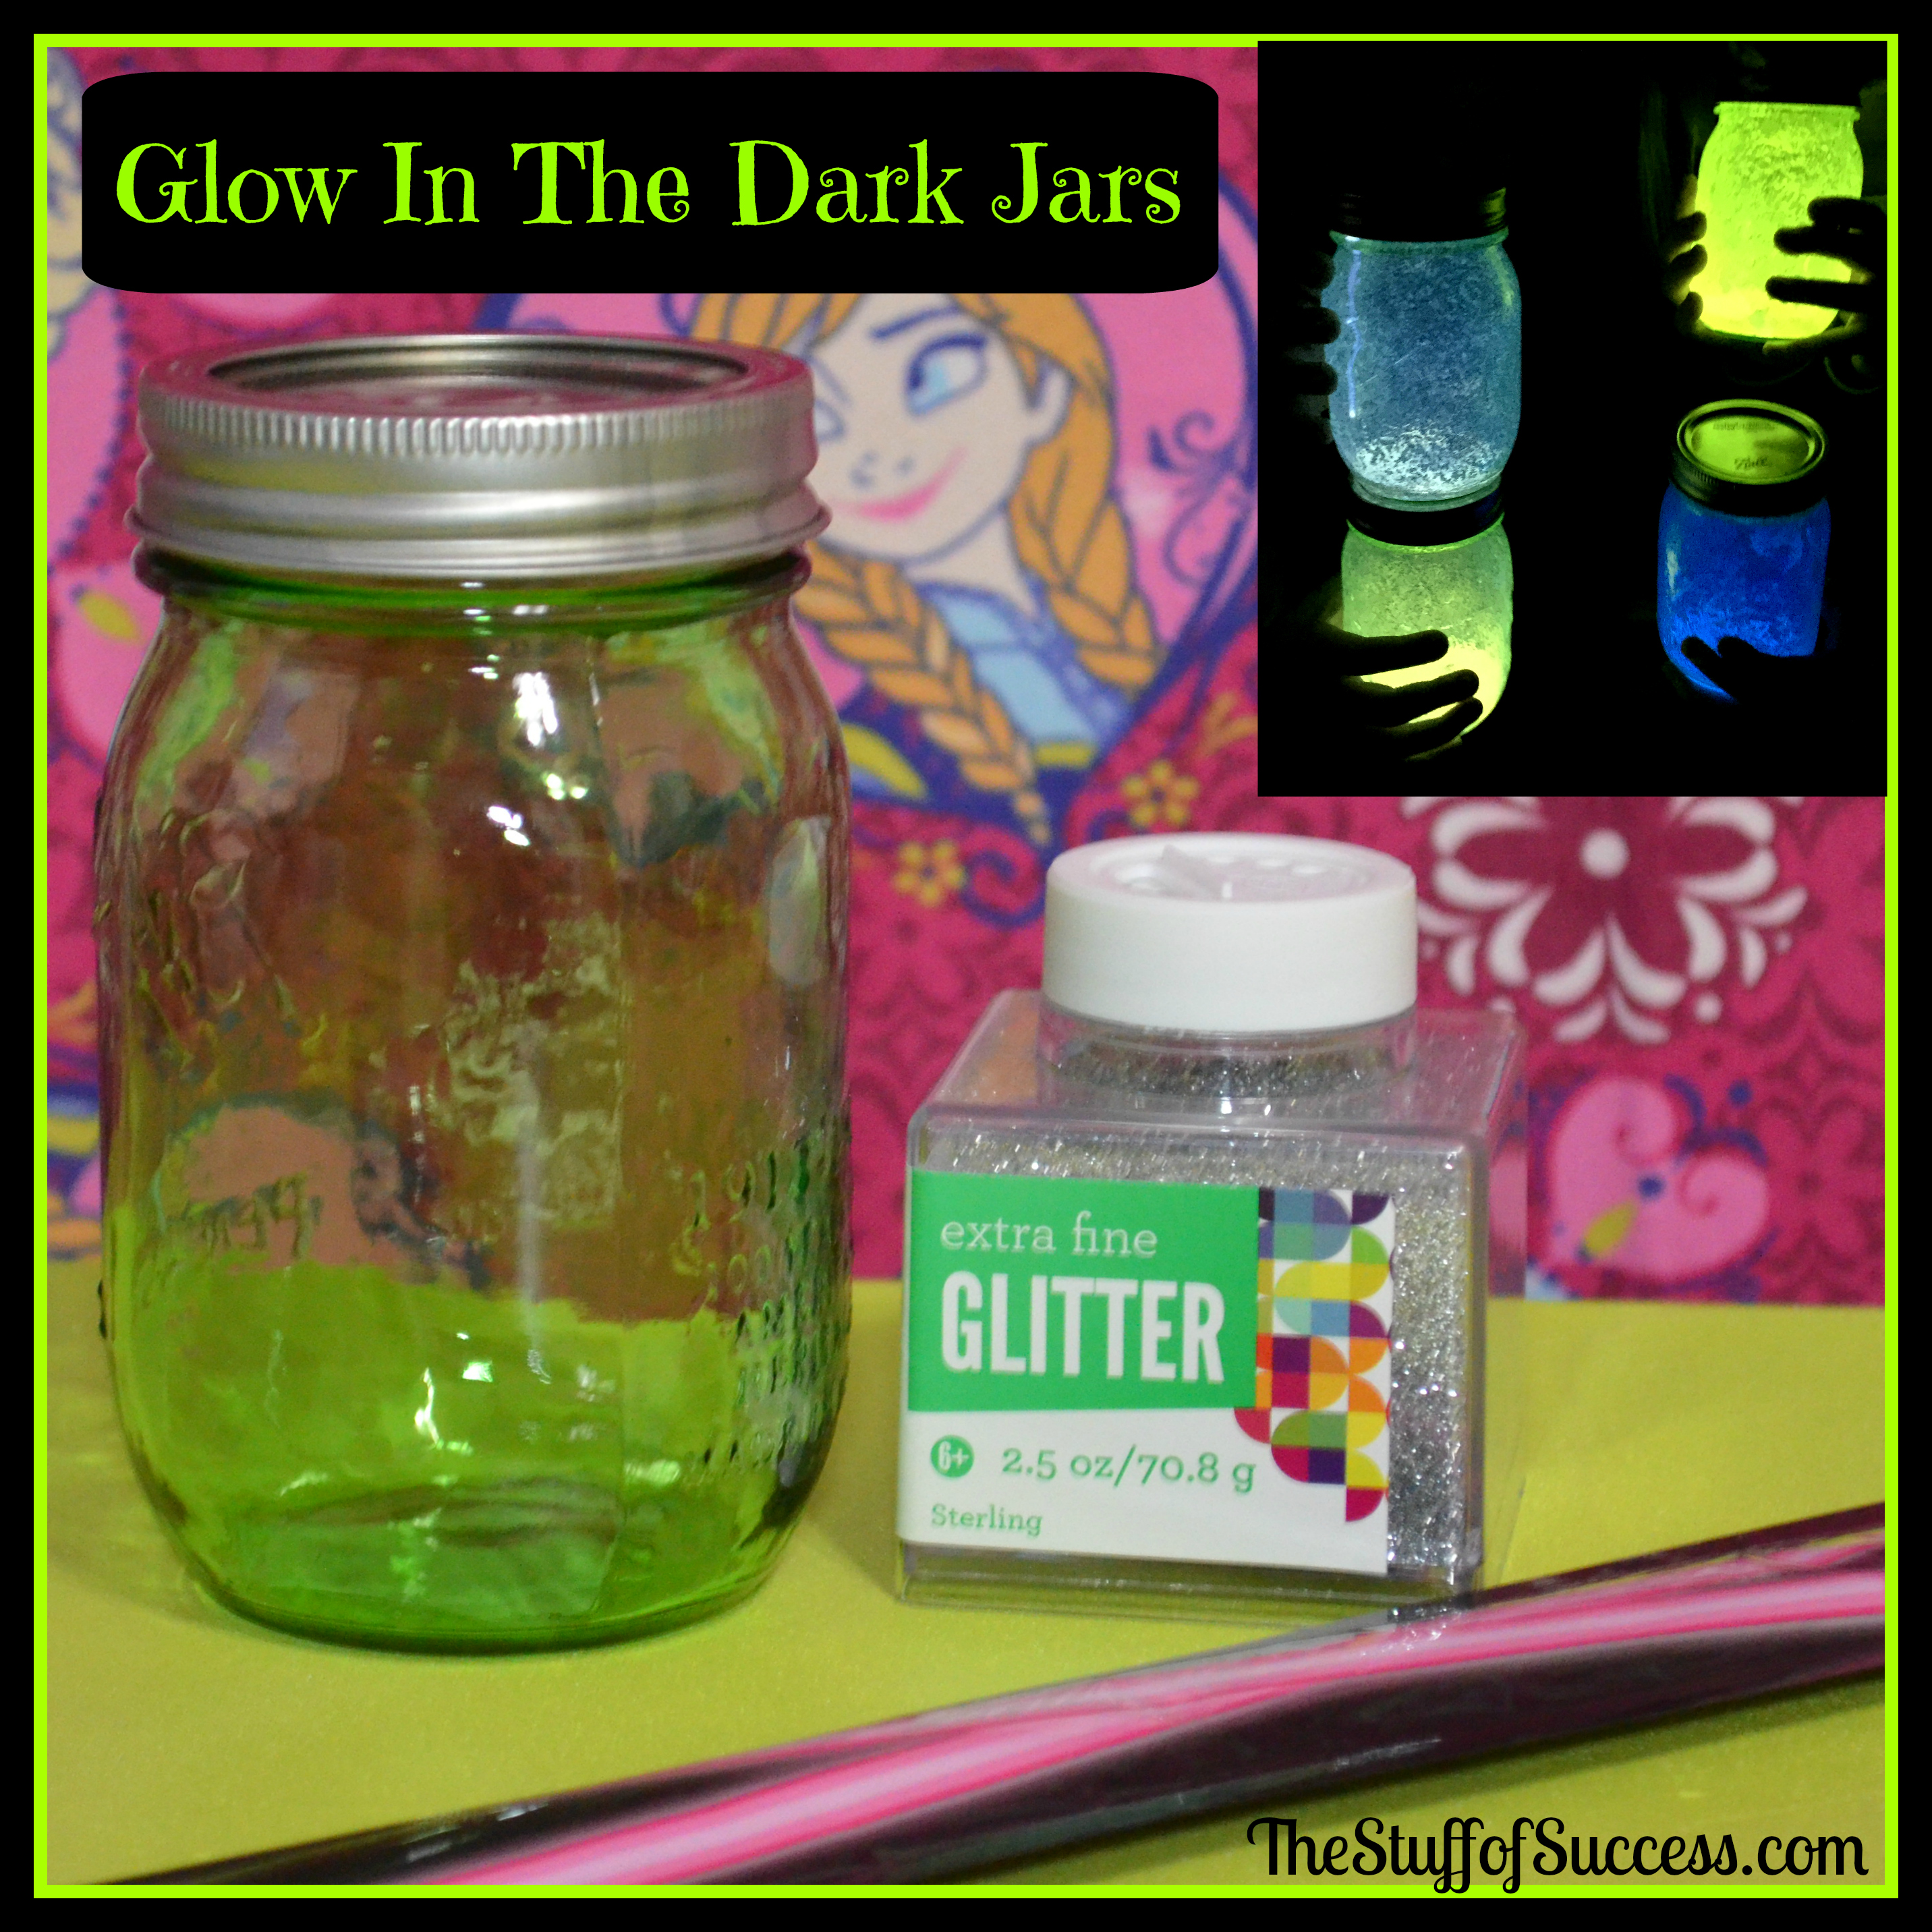 Glow in the Dark Jars An Easy Fun Project The Stuff of Success